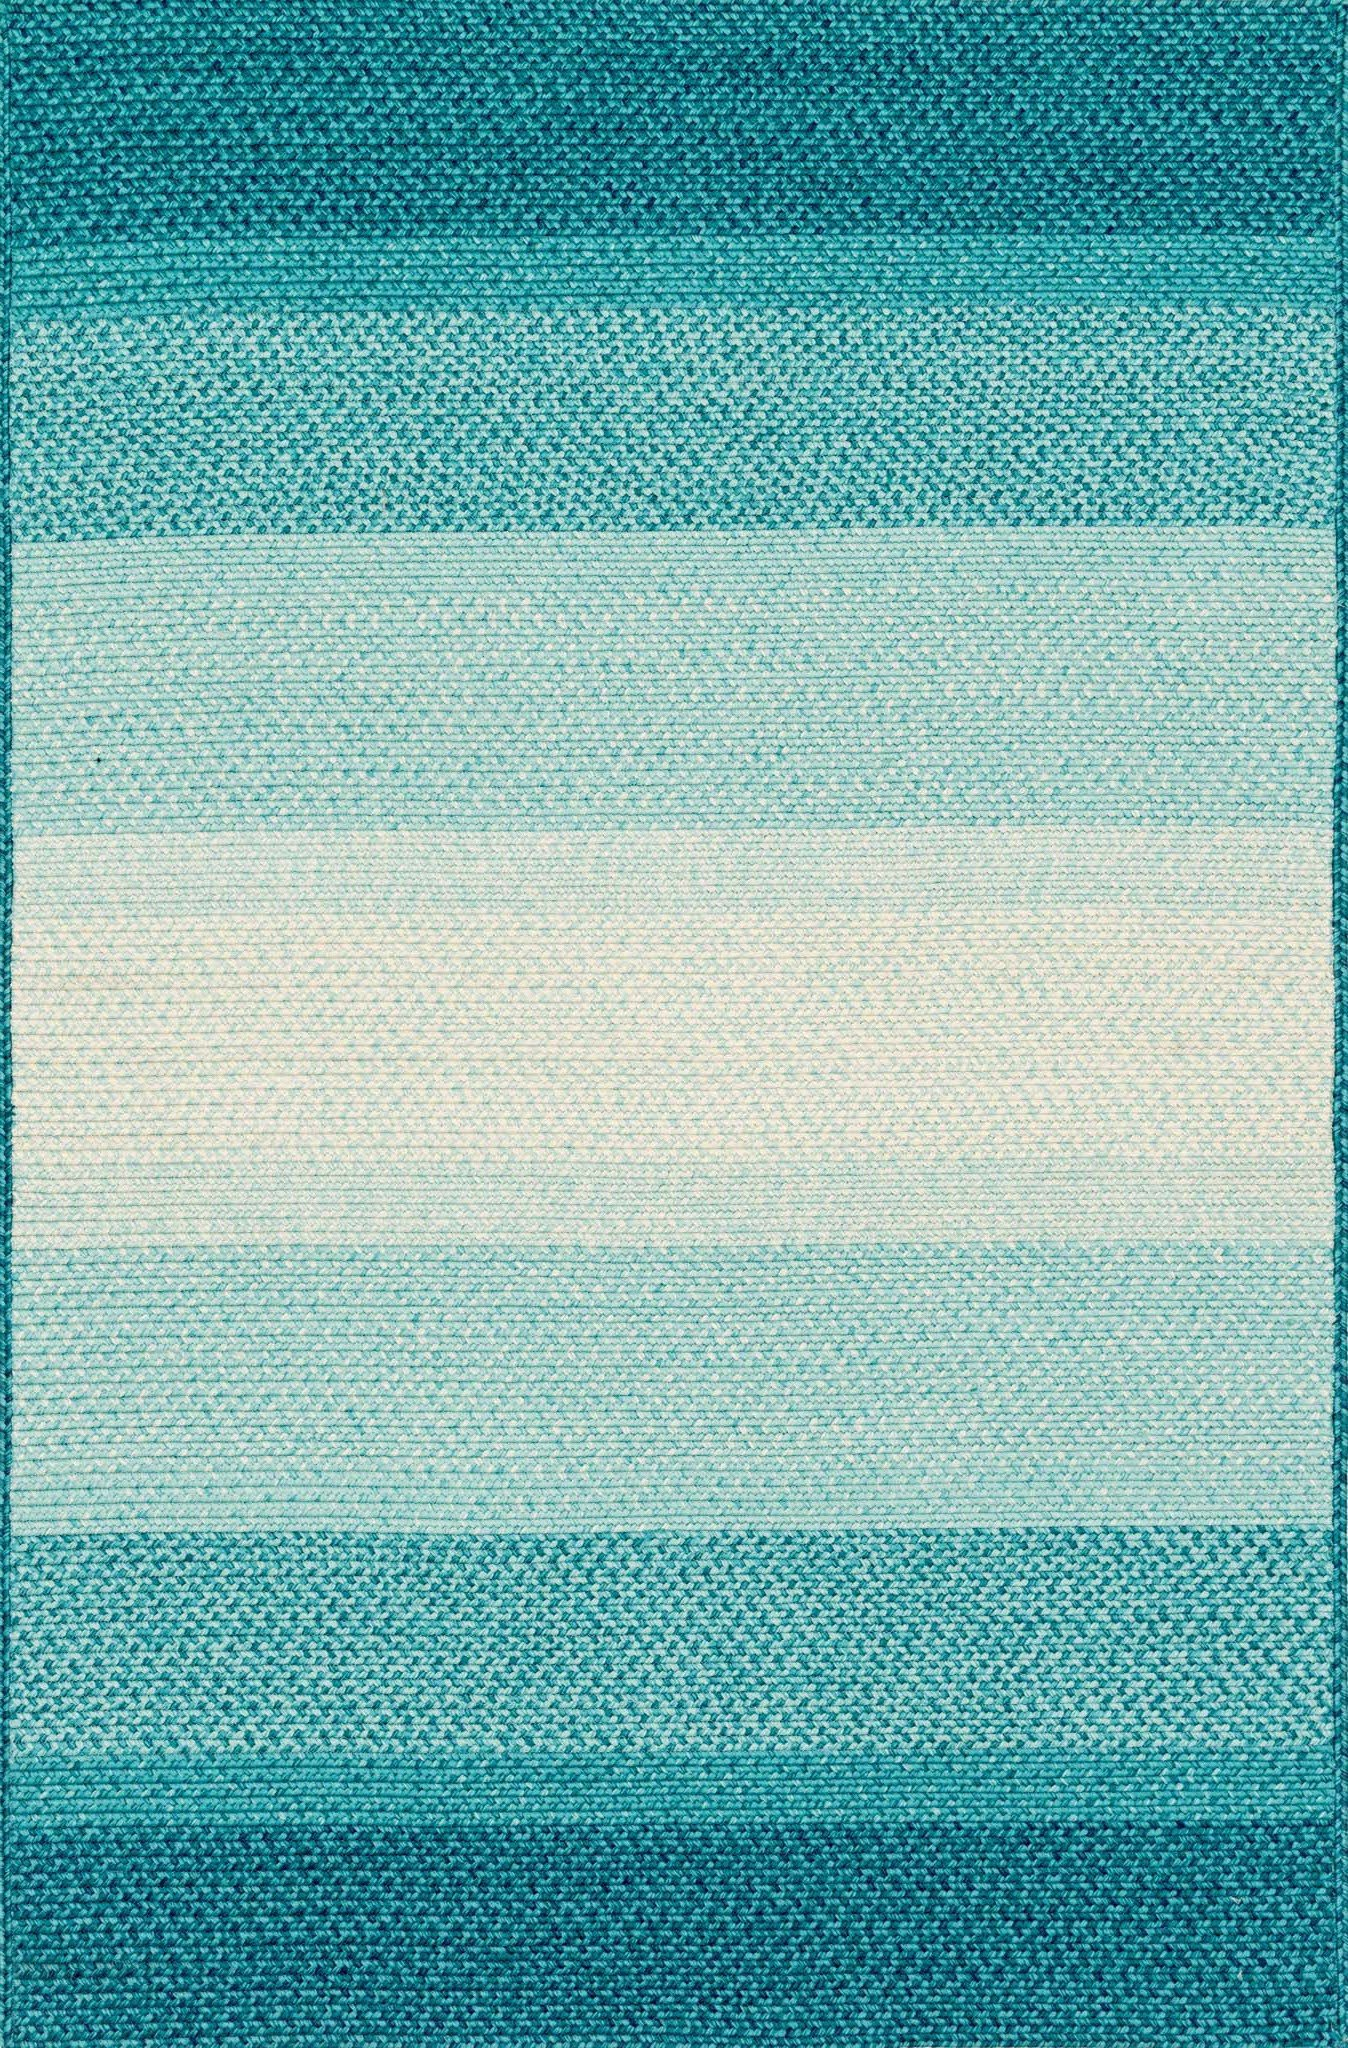 Loloi Rugs Garrett Collection Area Rug, Blue, 7'9'' by 9'9'' by Loloi